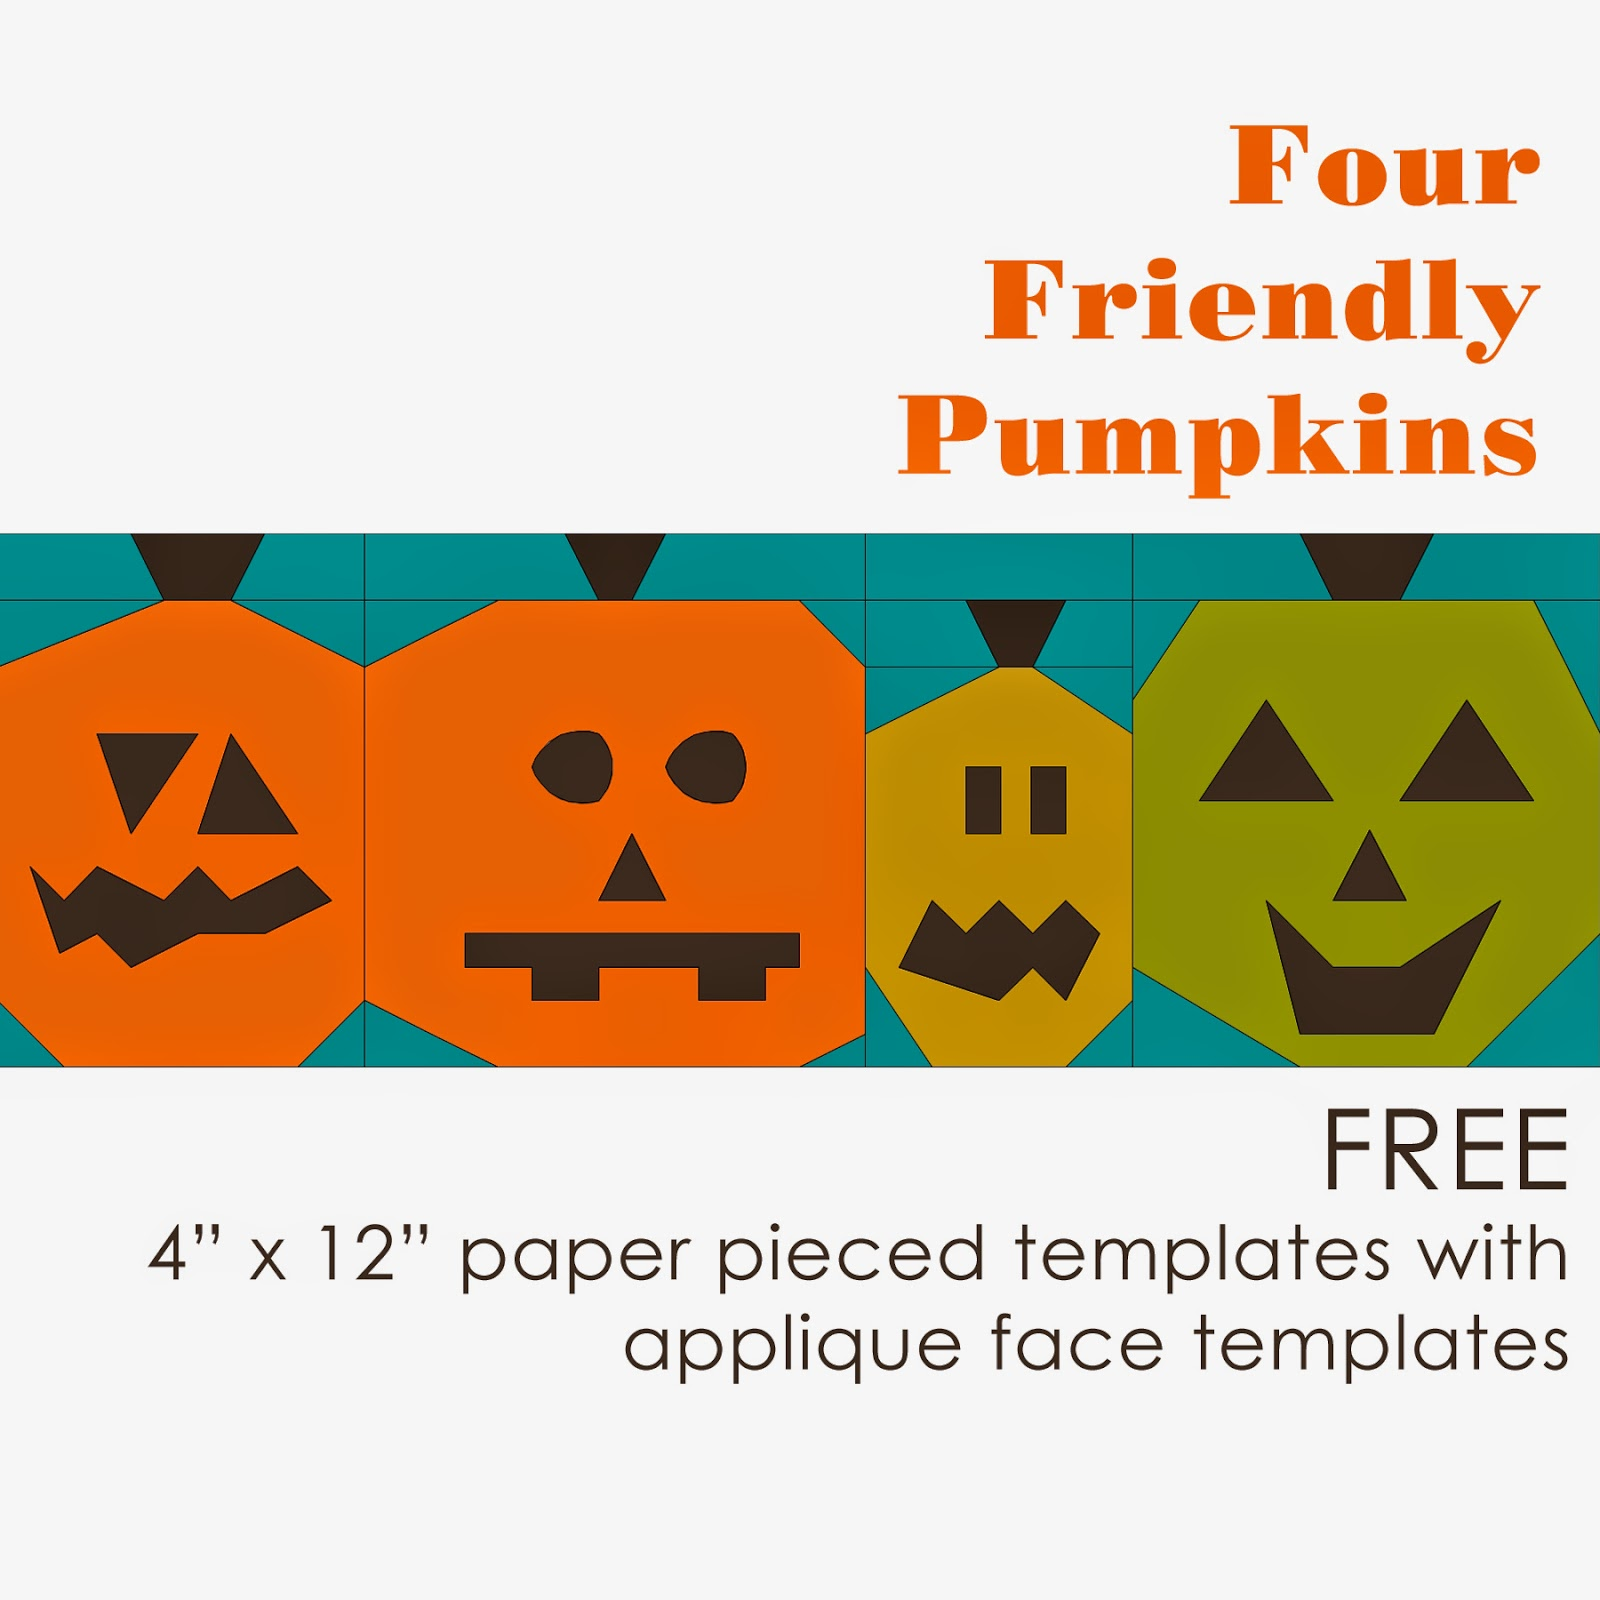 http://www.craftsy.com/pattern/quilting/home-decor/four-friendly-pumpkins/118891